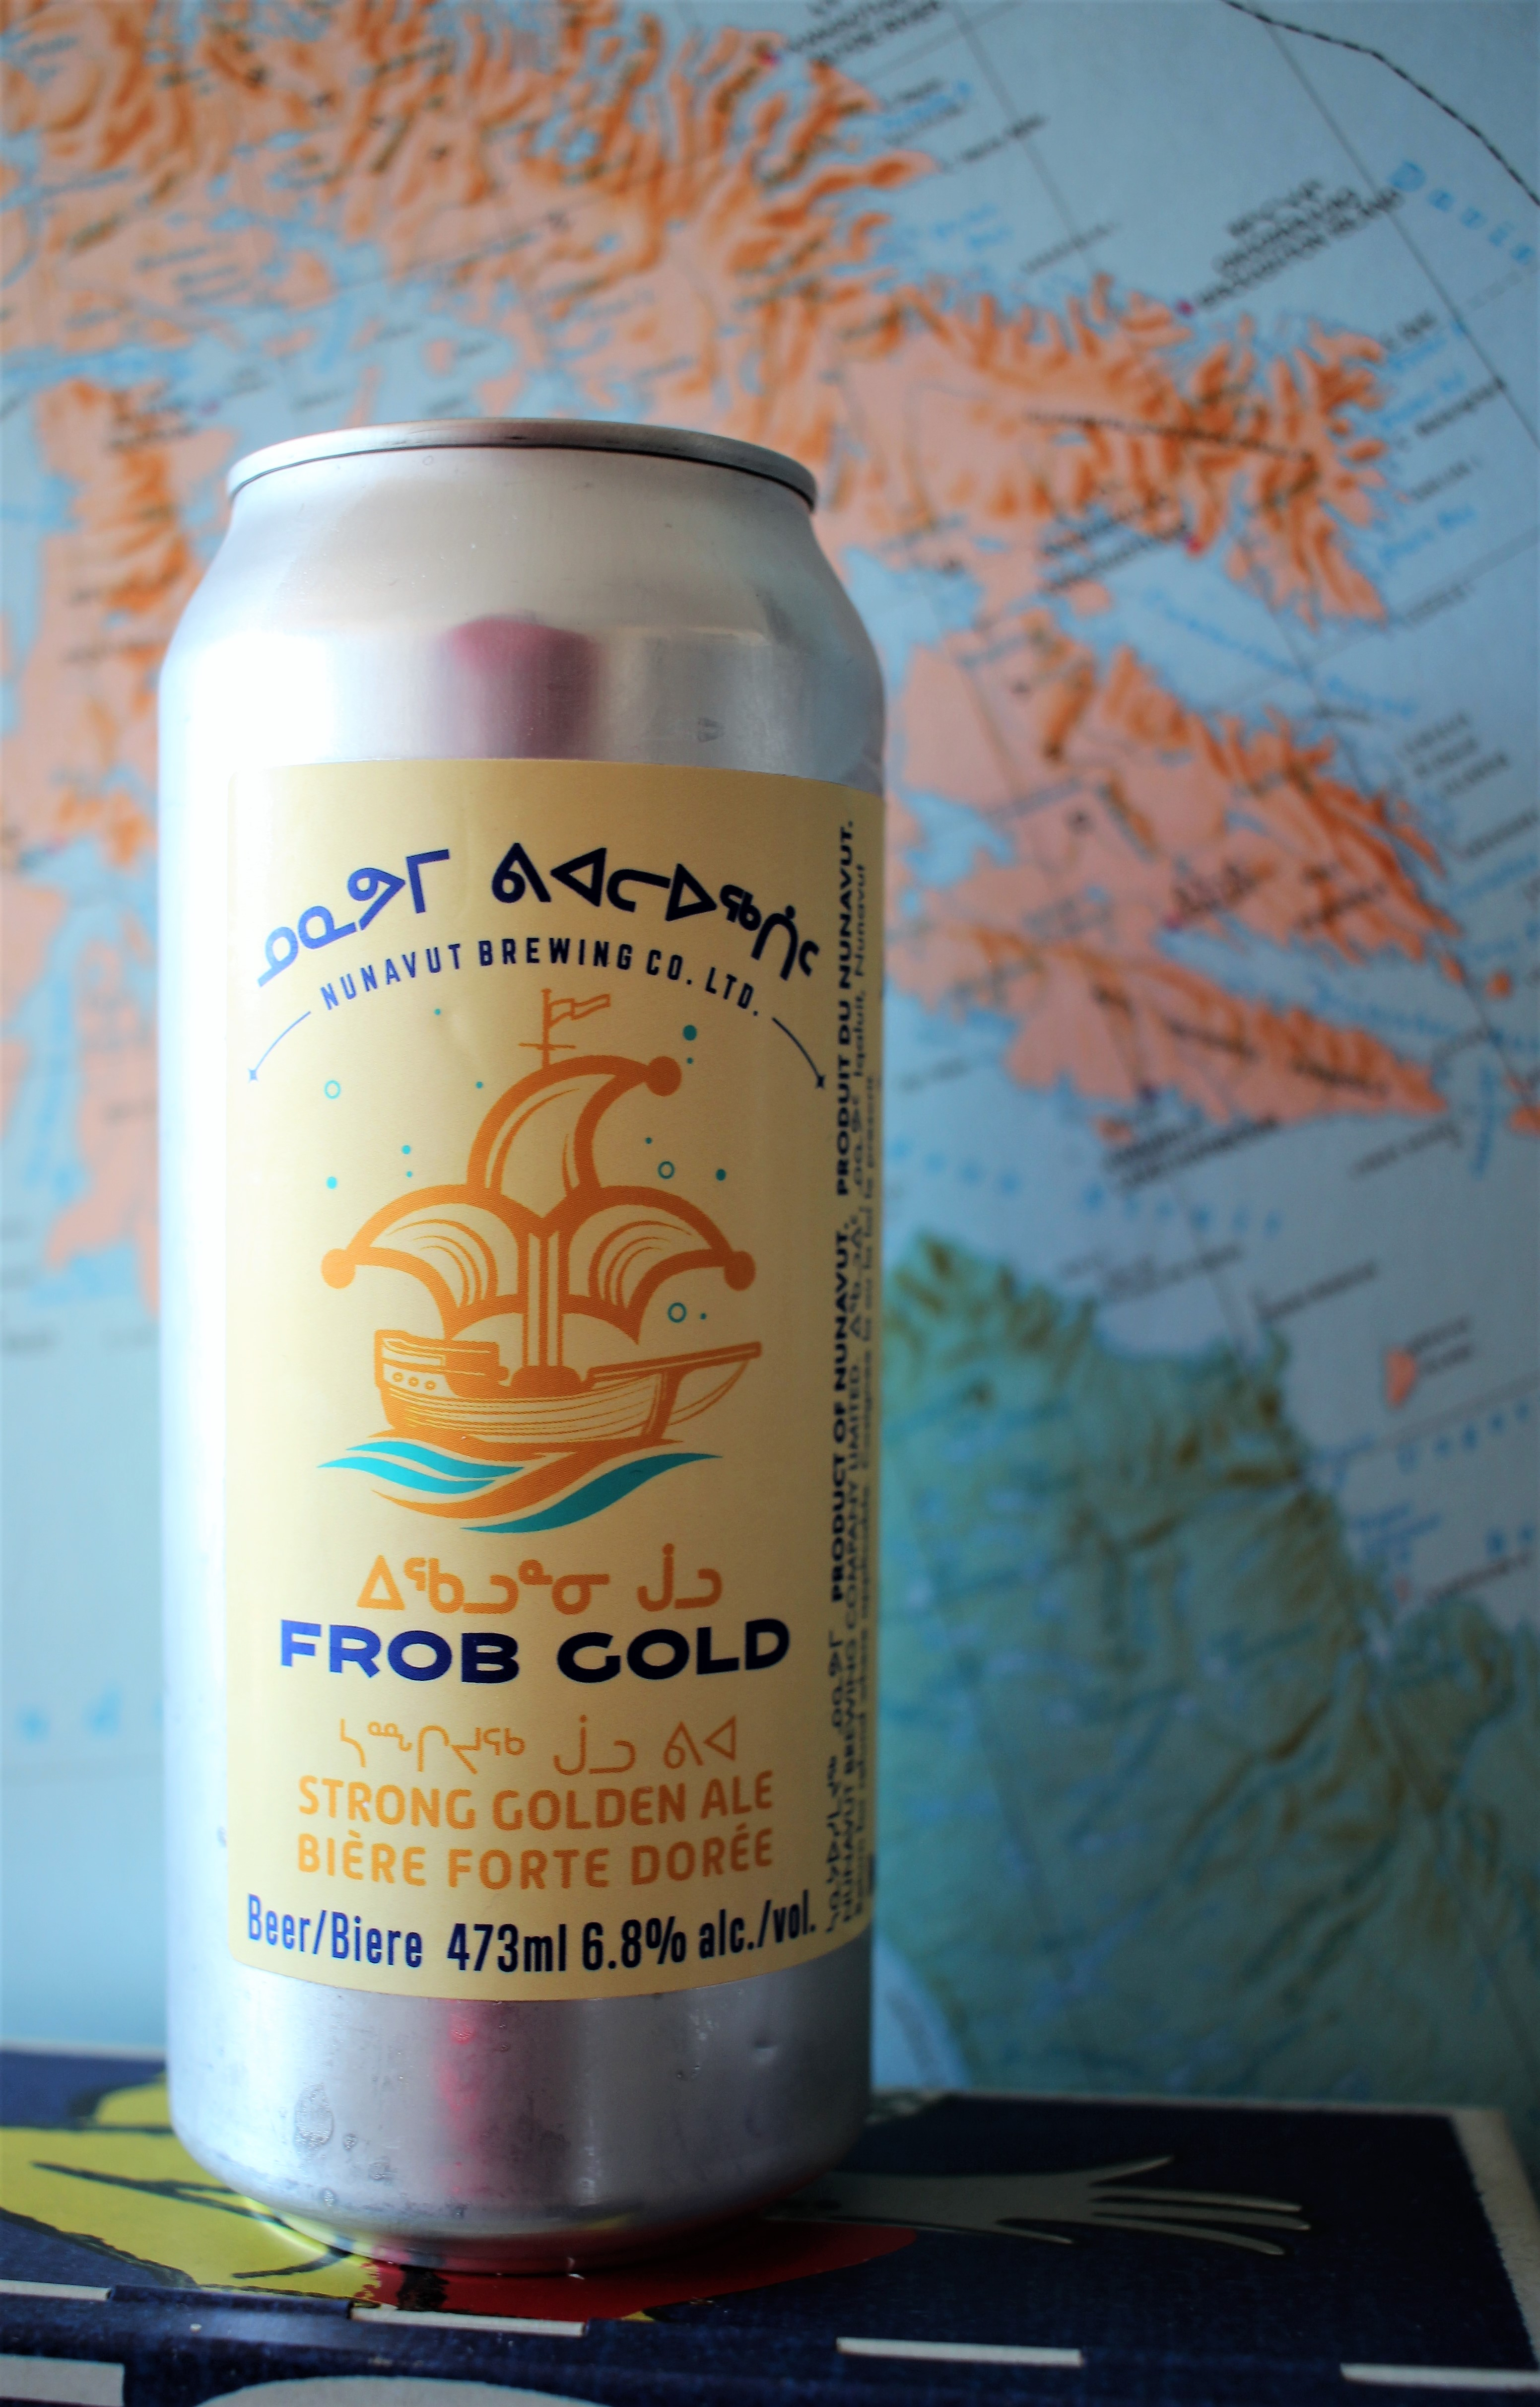 Nunavut Brewing Company ᐃᖃᓗᓐᓂ ᒎᓗ Frob Gold Strong Golden Ale